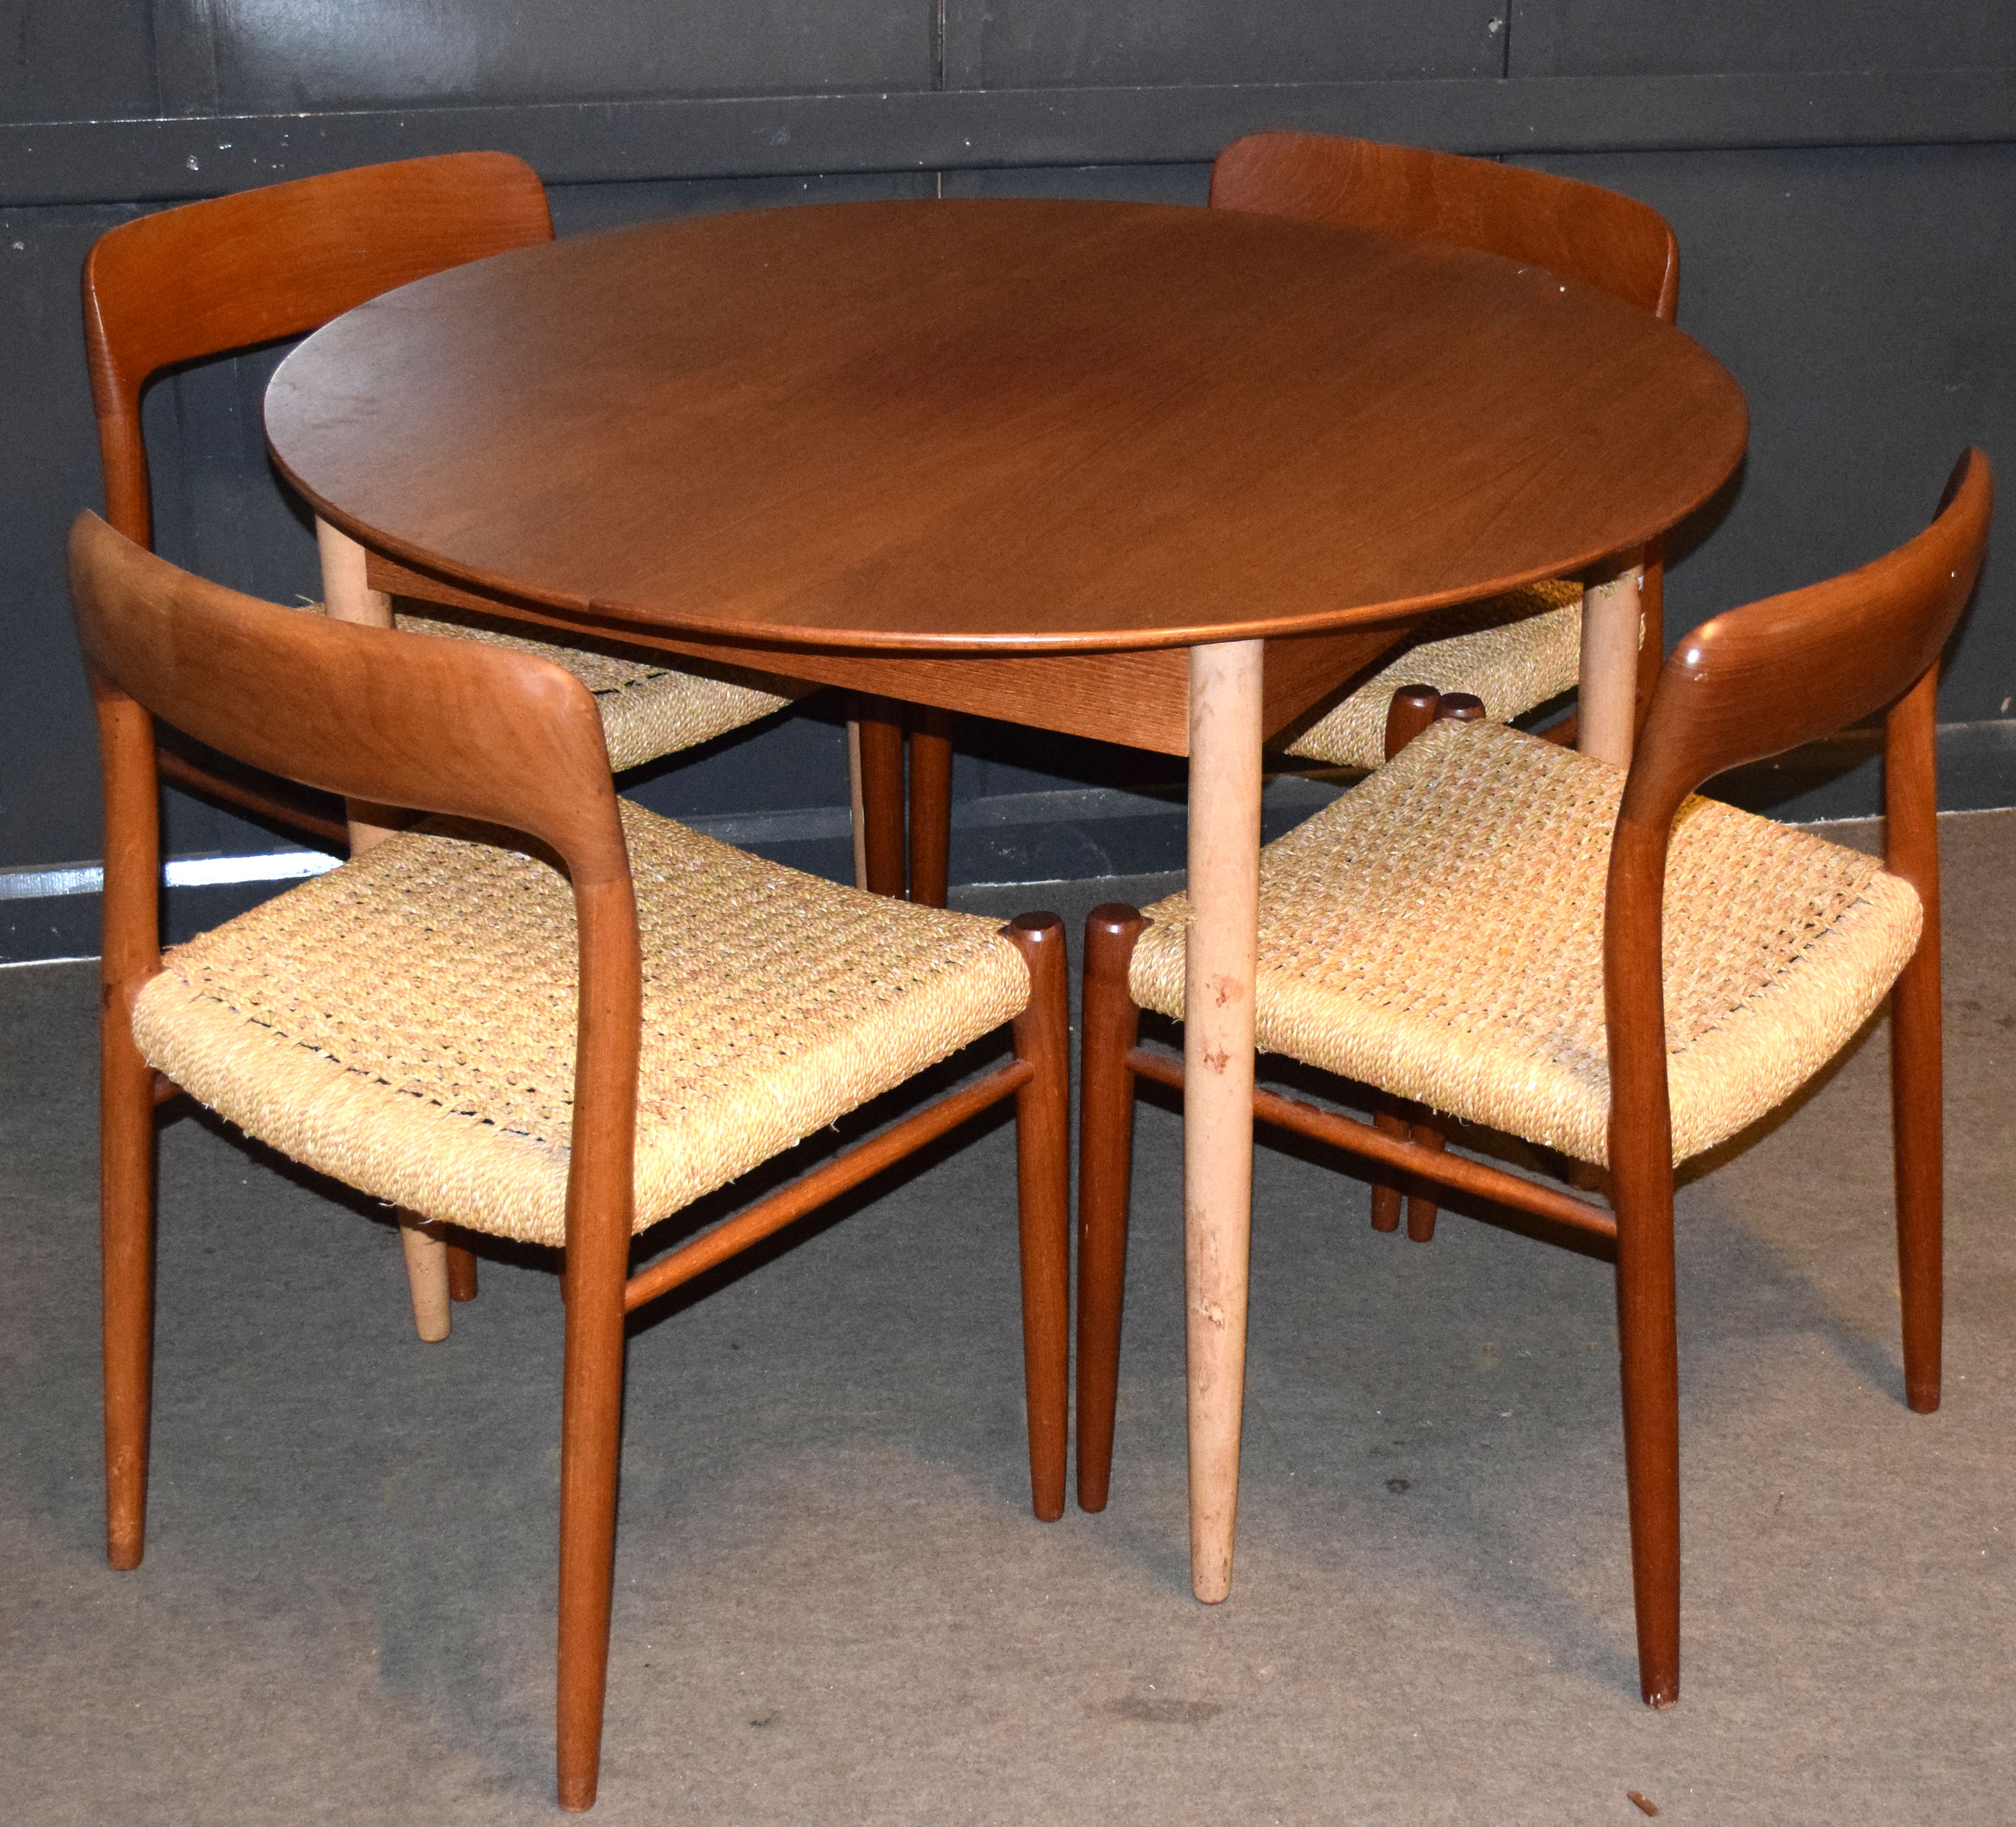 Niels Moller for J L Moller, set of four Danish teak dining chairs with string seats, chairs stamped